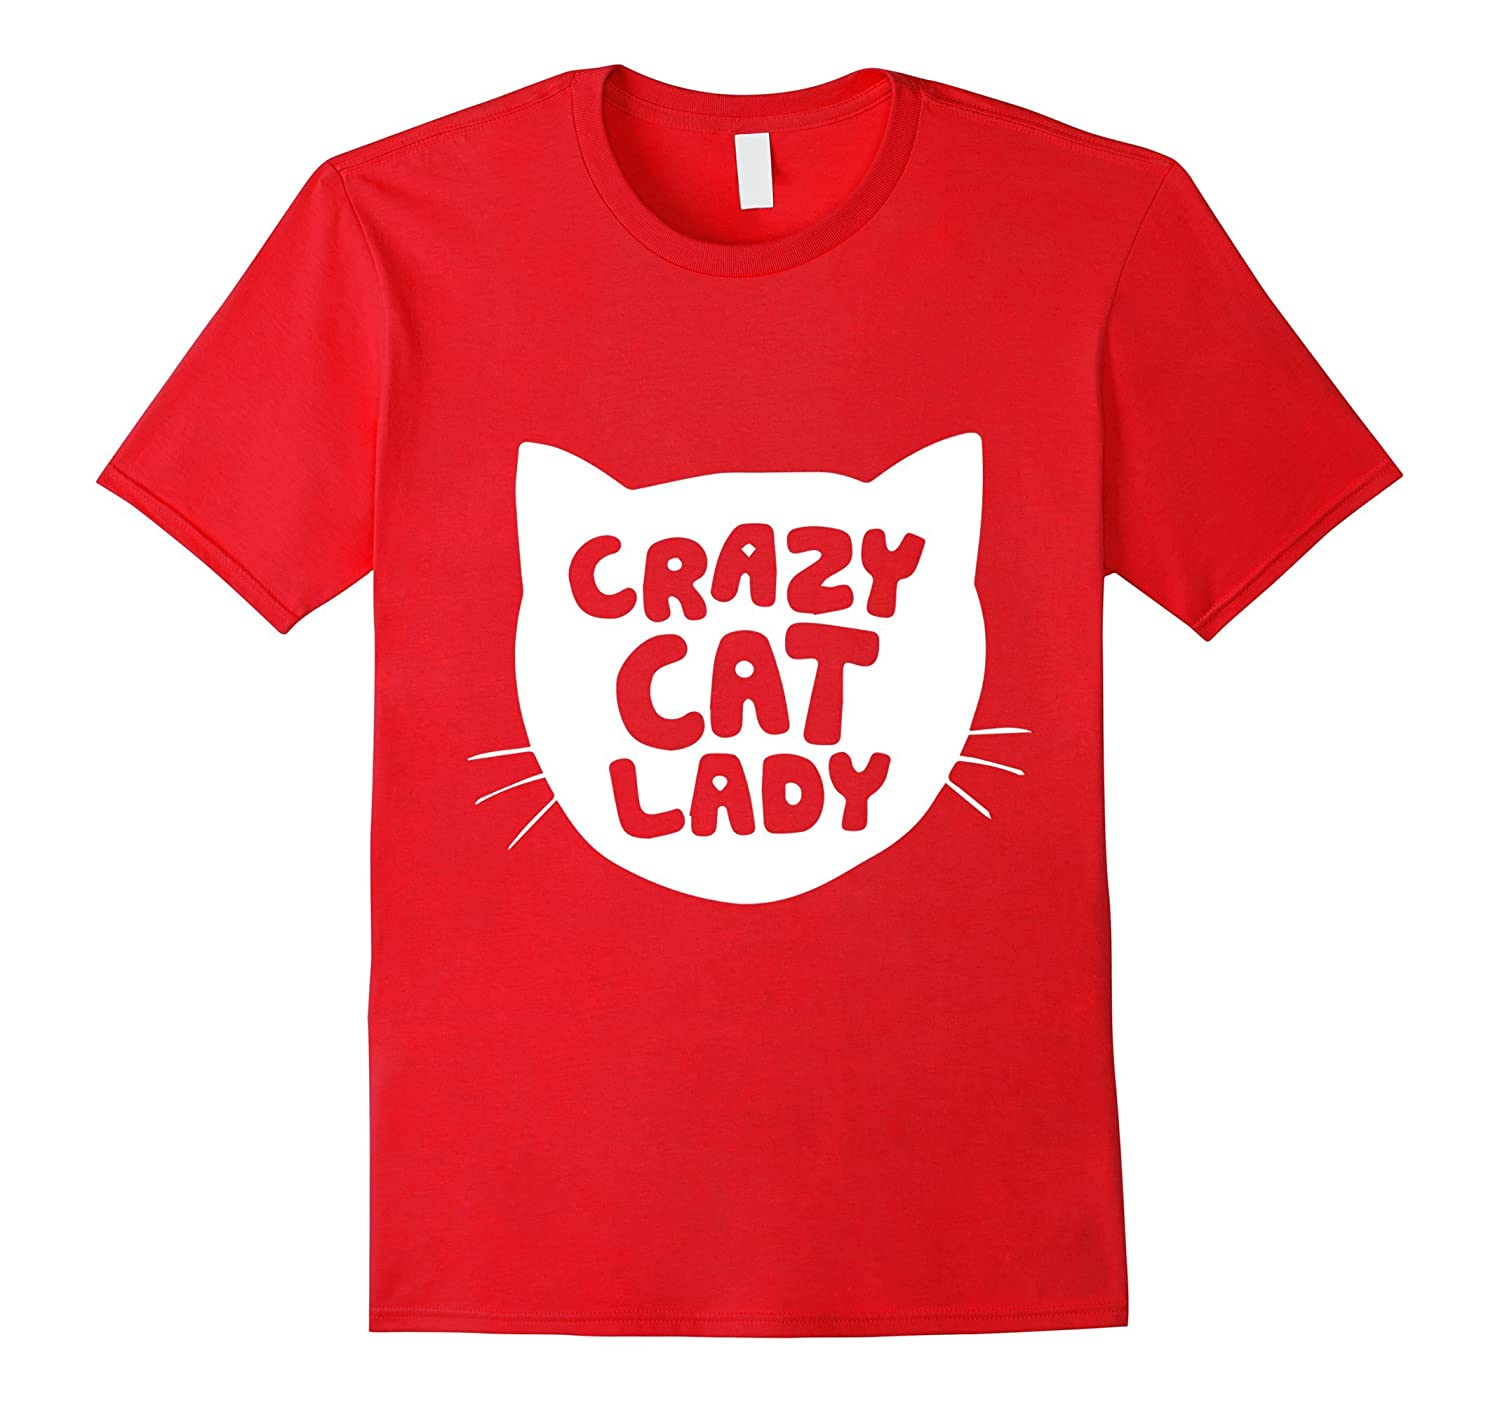 'Crazy Cat Lady' Short Sleeve Cotton Comfort Funny Tees-BN